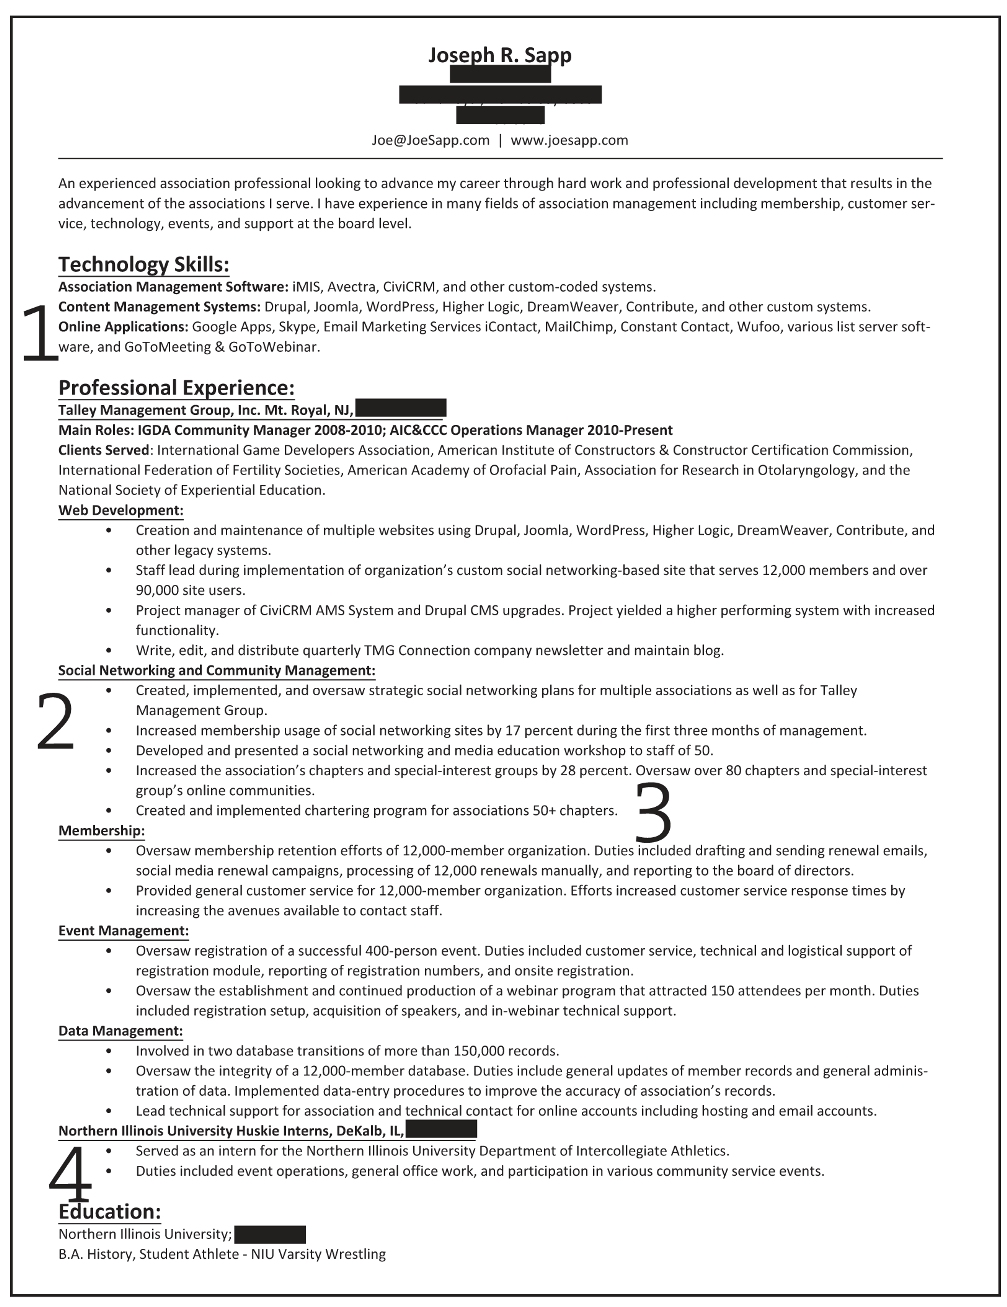 how to write professional summary in resume